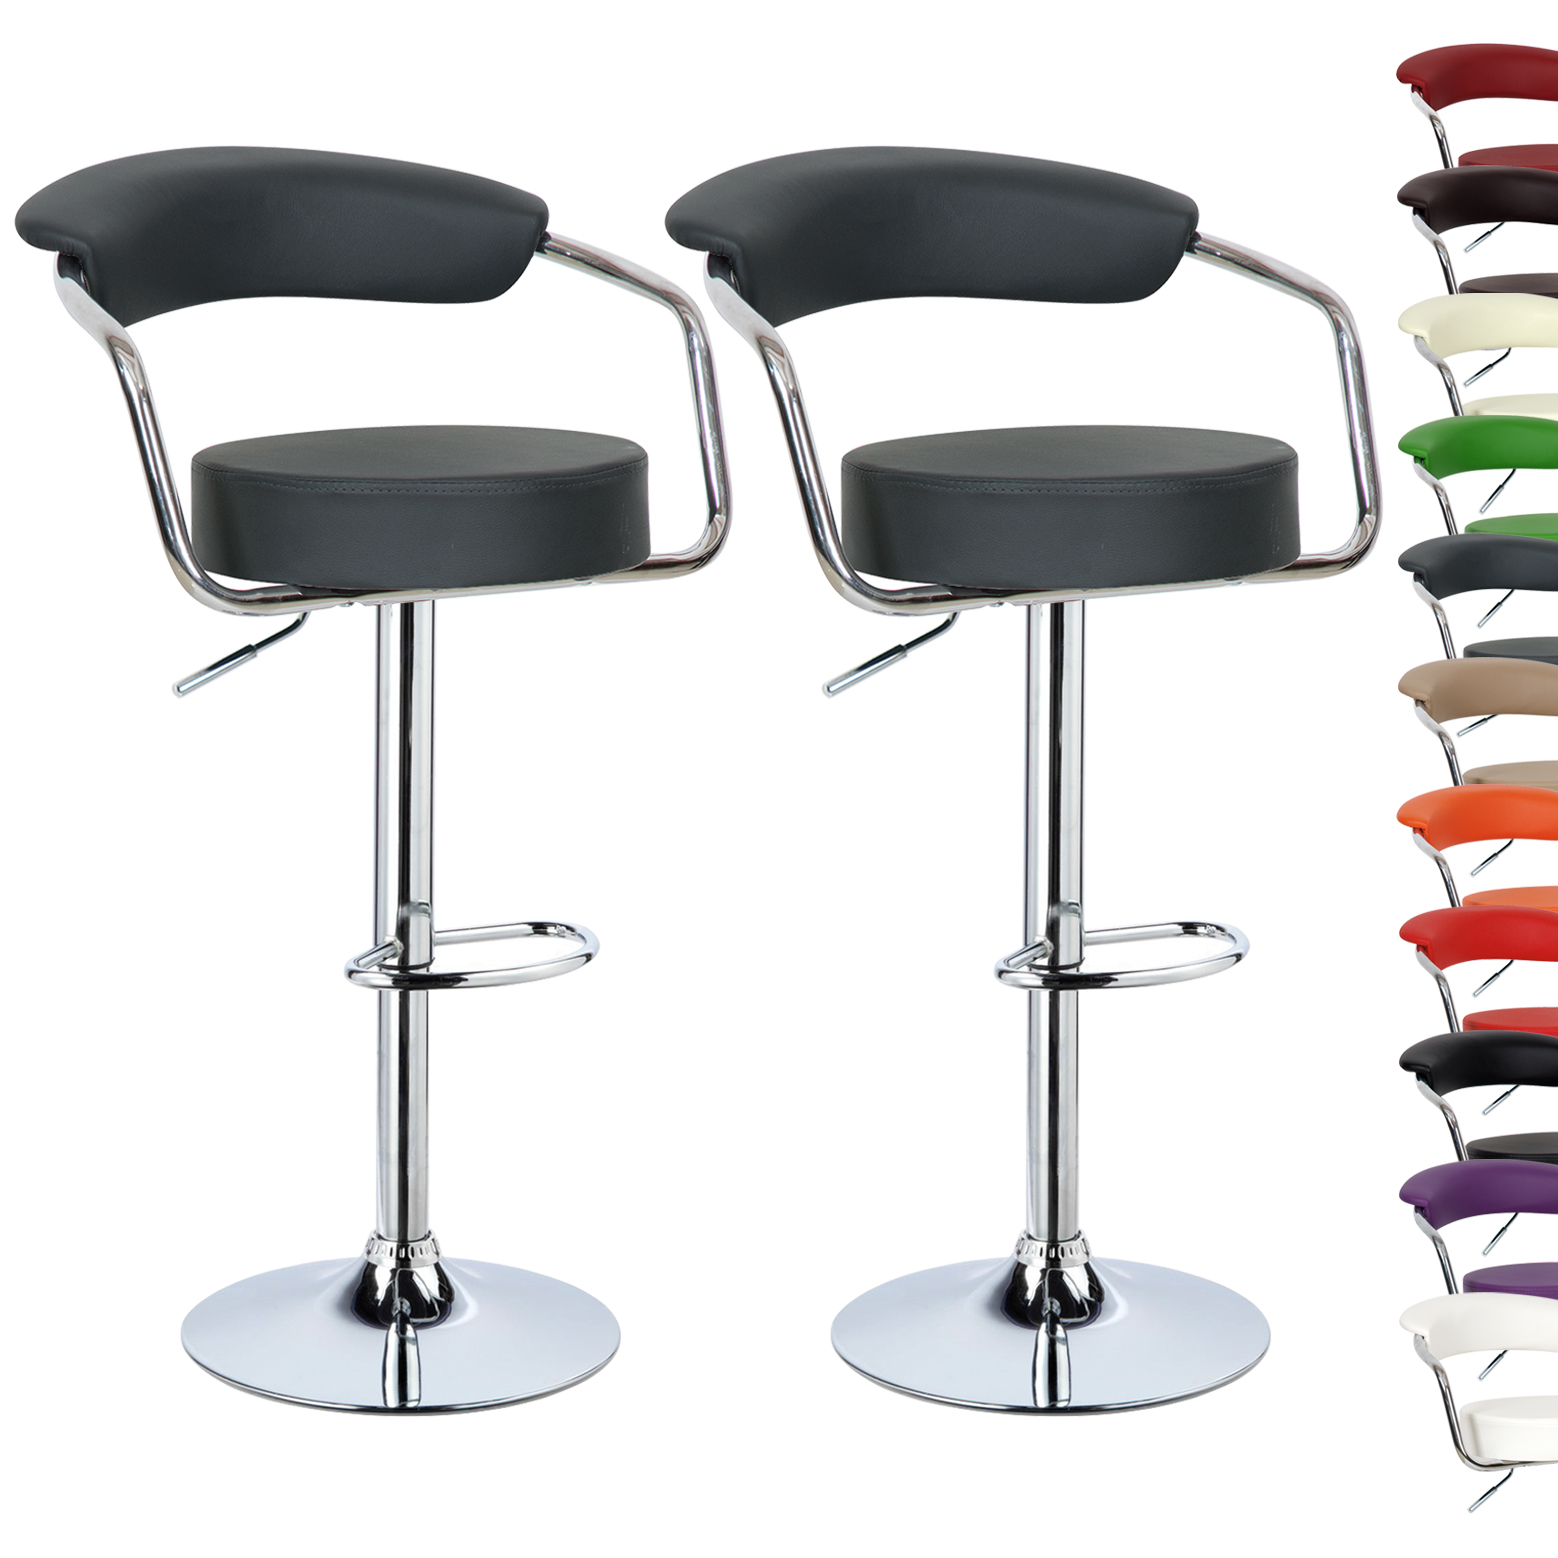 1 2 Pcs Faux Leather Bar Stools Kitchen Breakfast Stool